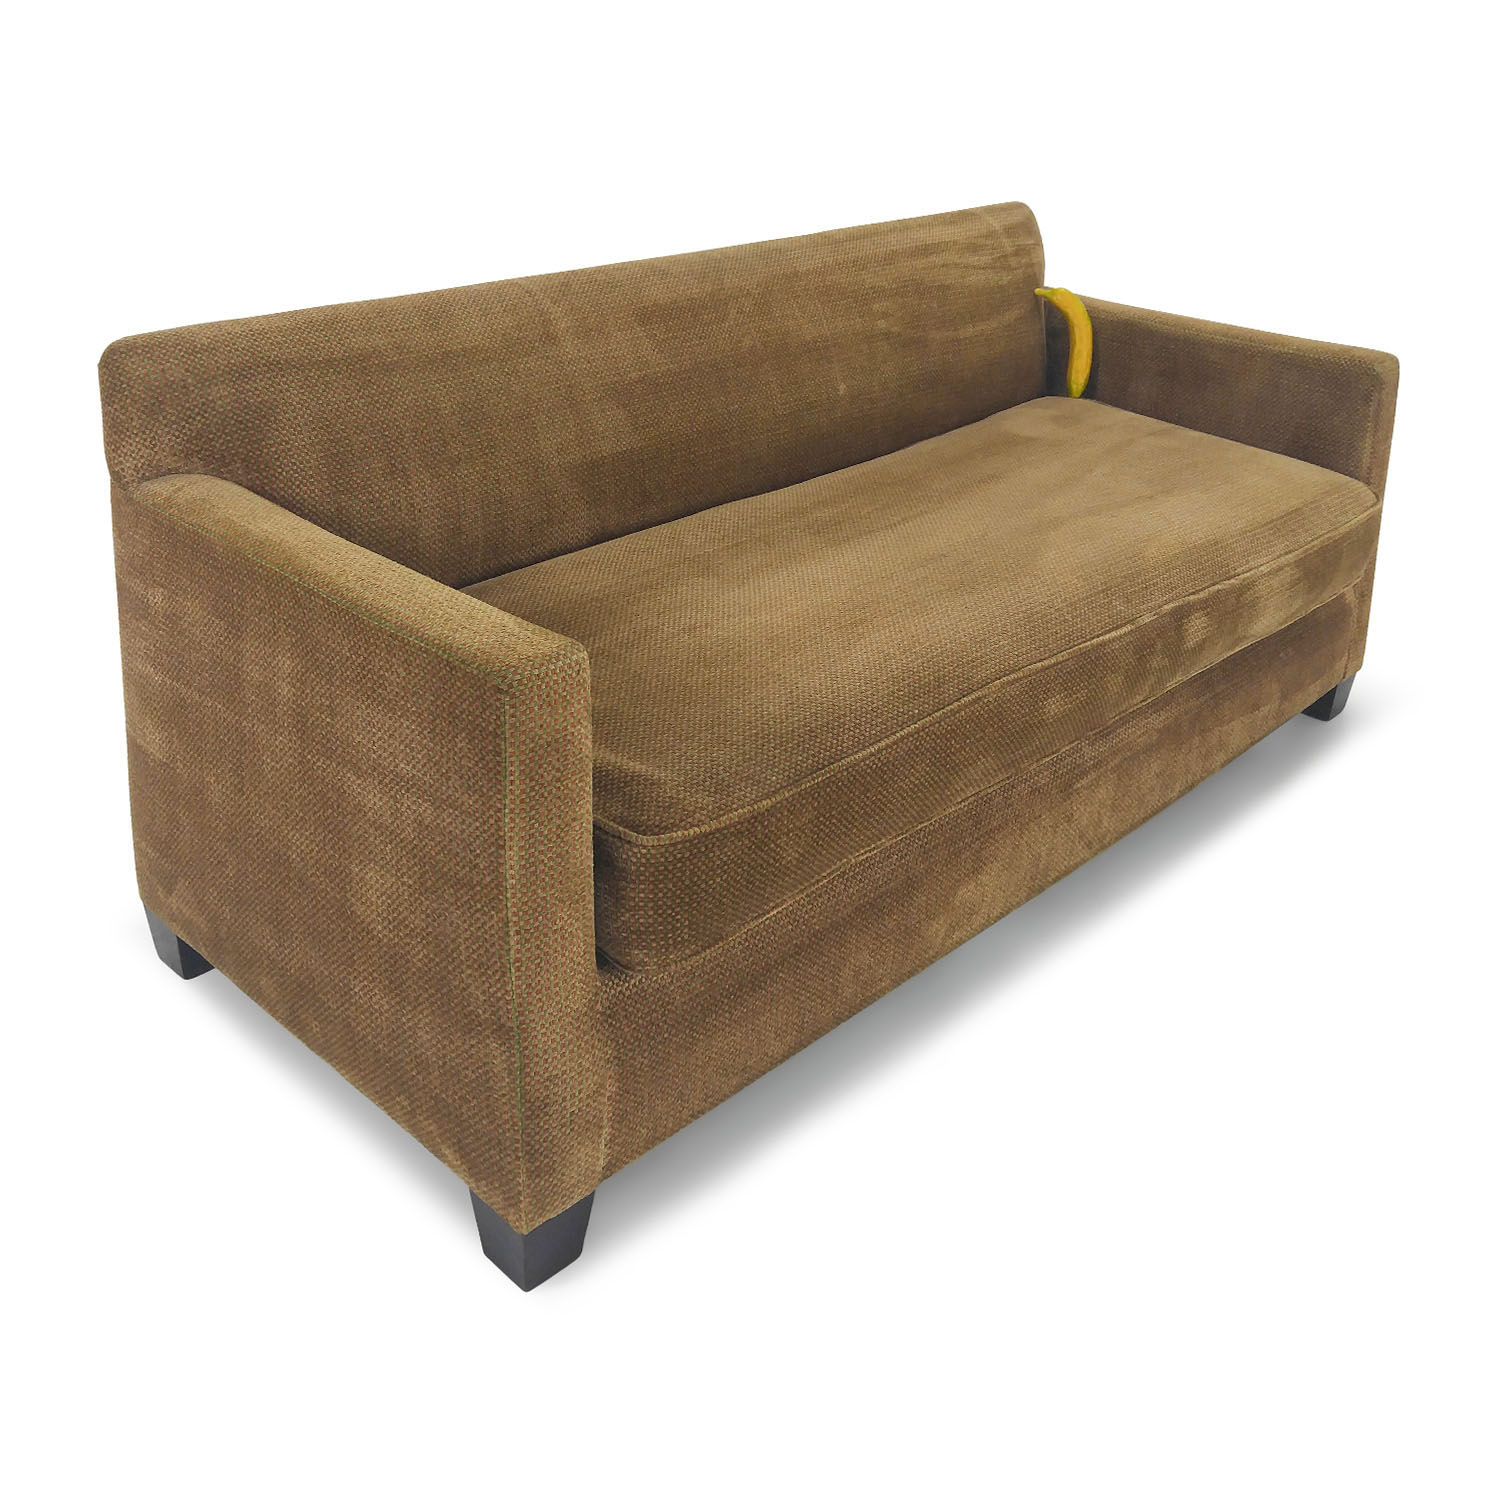 single cushion sofa pros and cons best bed under 200 81 off custom couch sofas